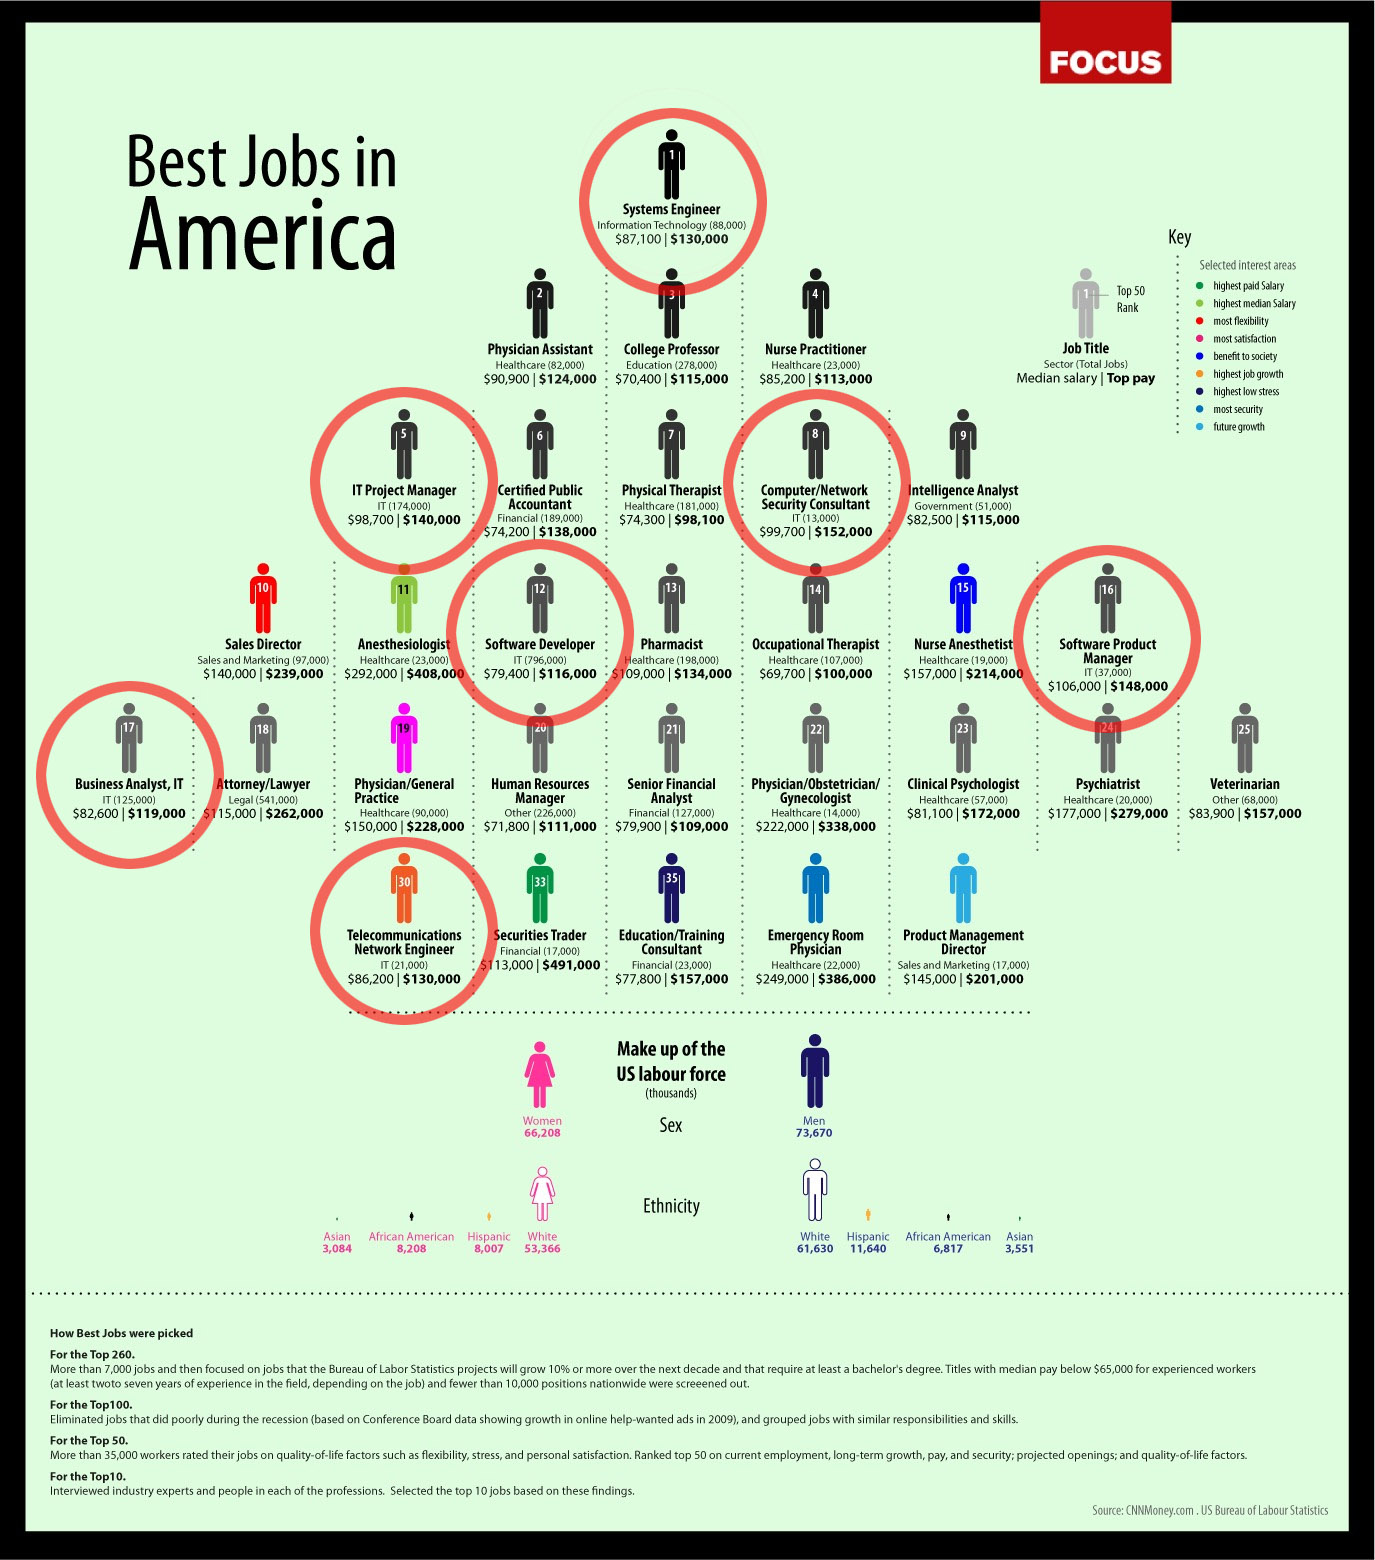 focus identifies the best jobs in america ccc blog focus identifies the best jobs in america